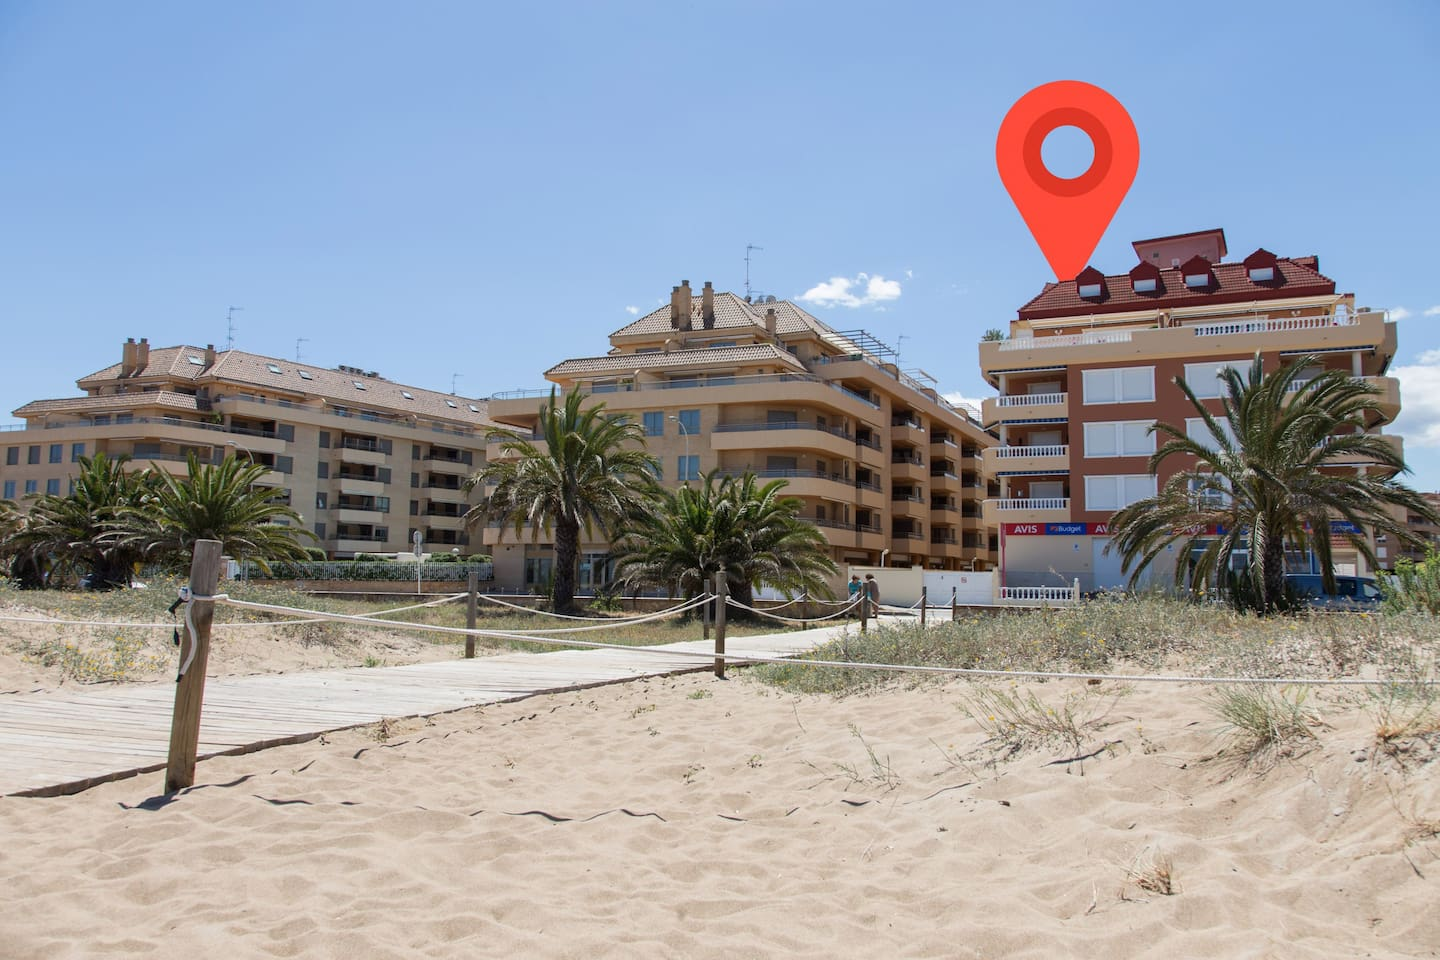 view of the apartment's facade from the beach